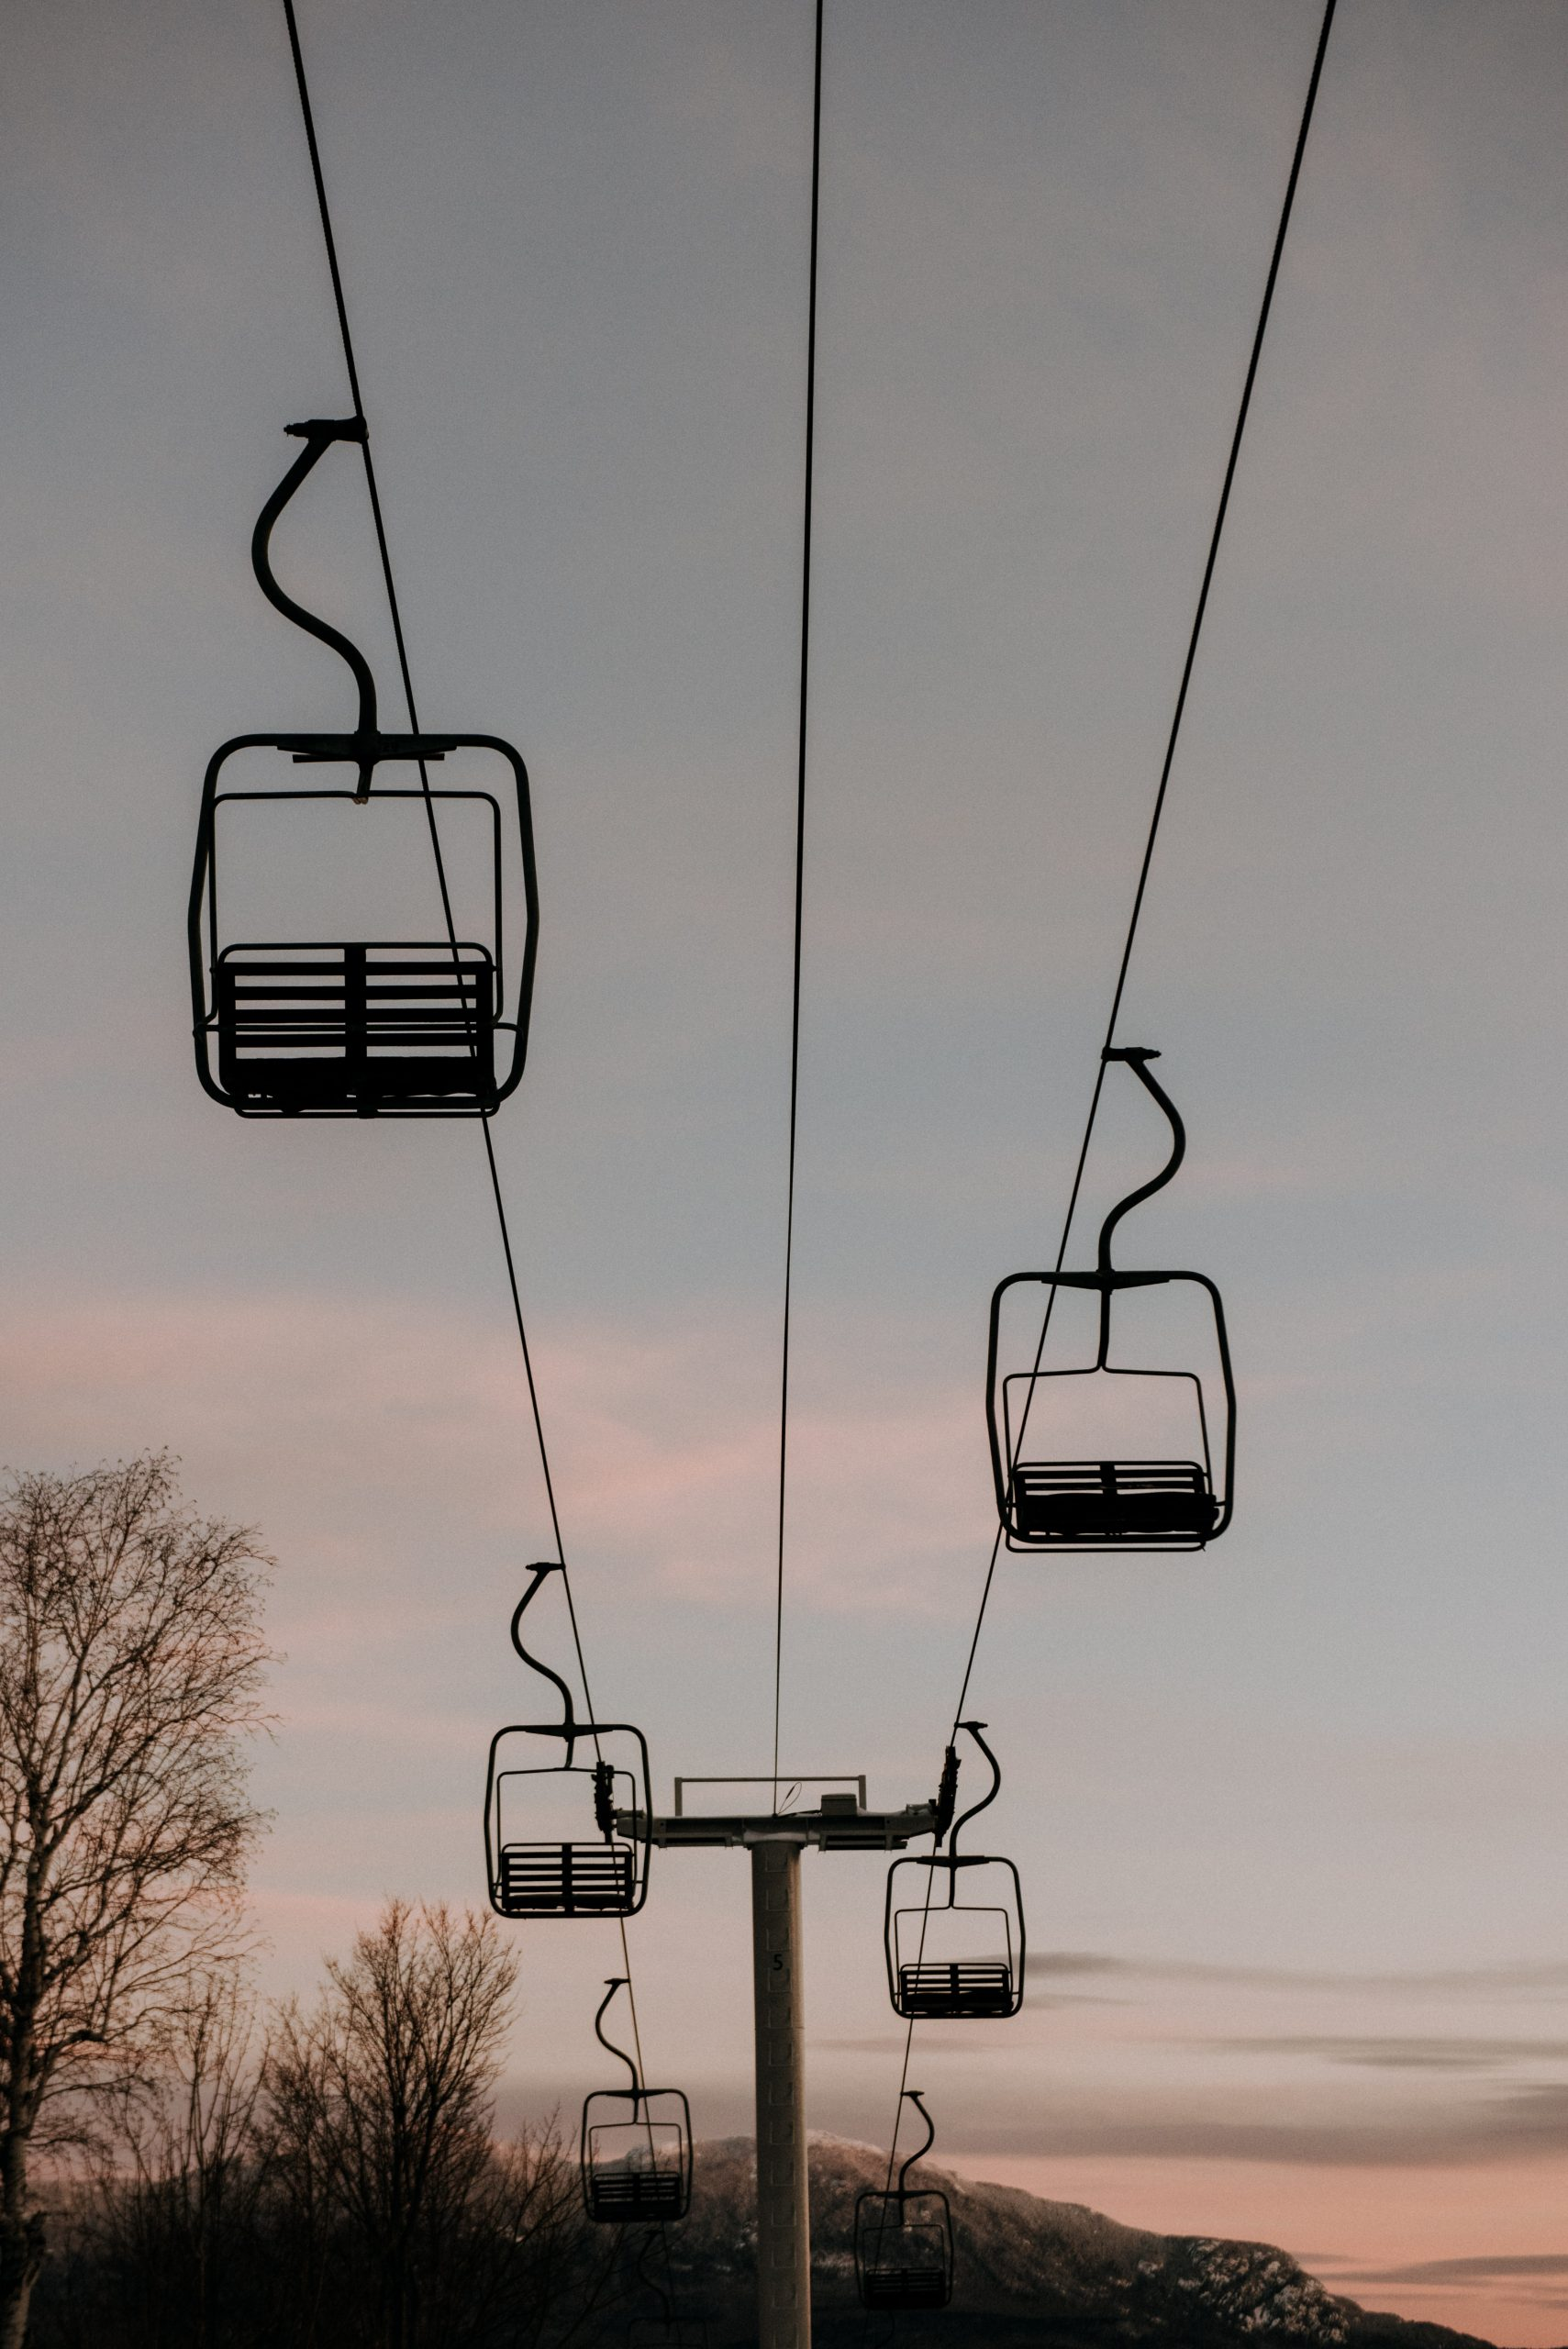 Ski lifts at sunrise